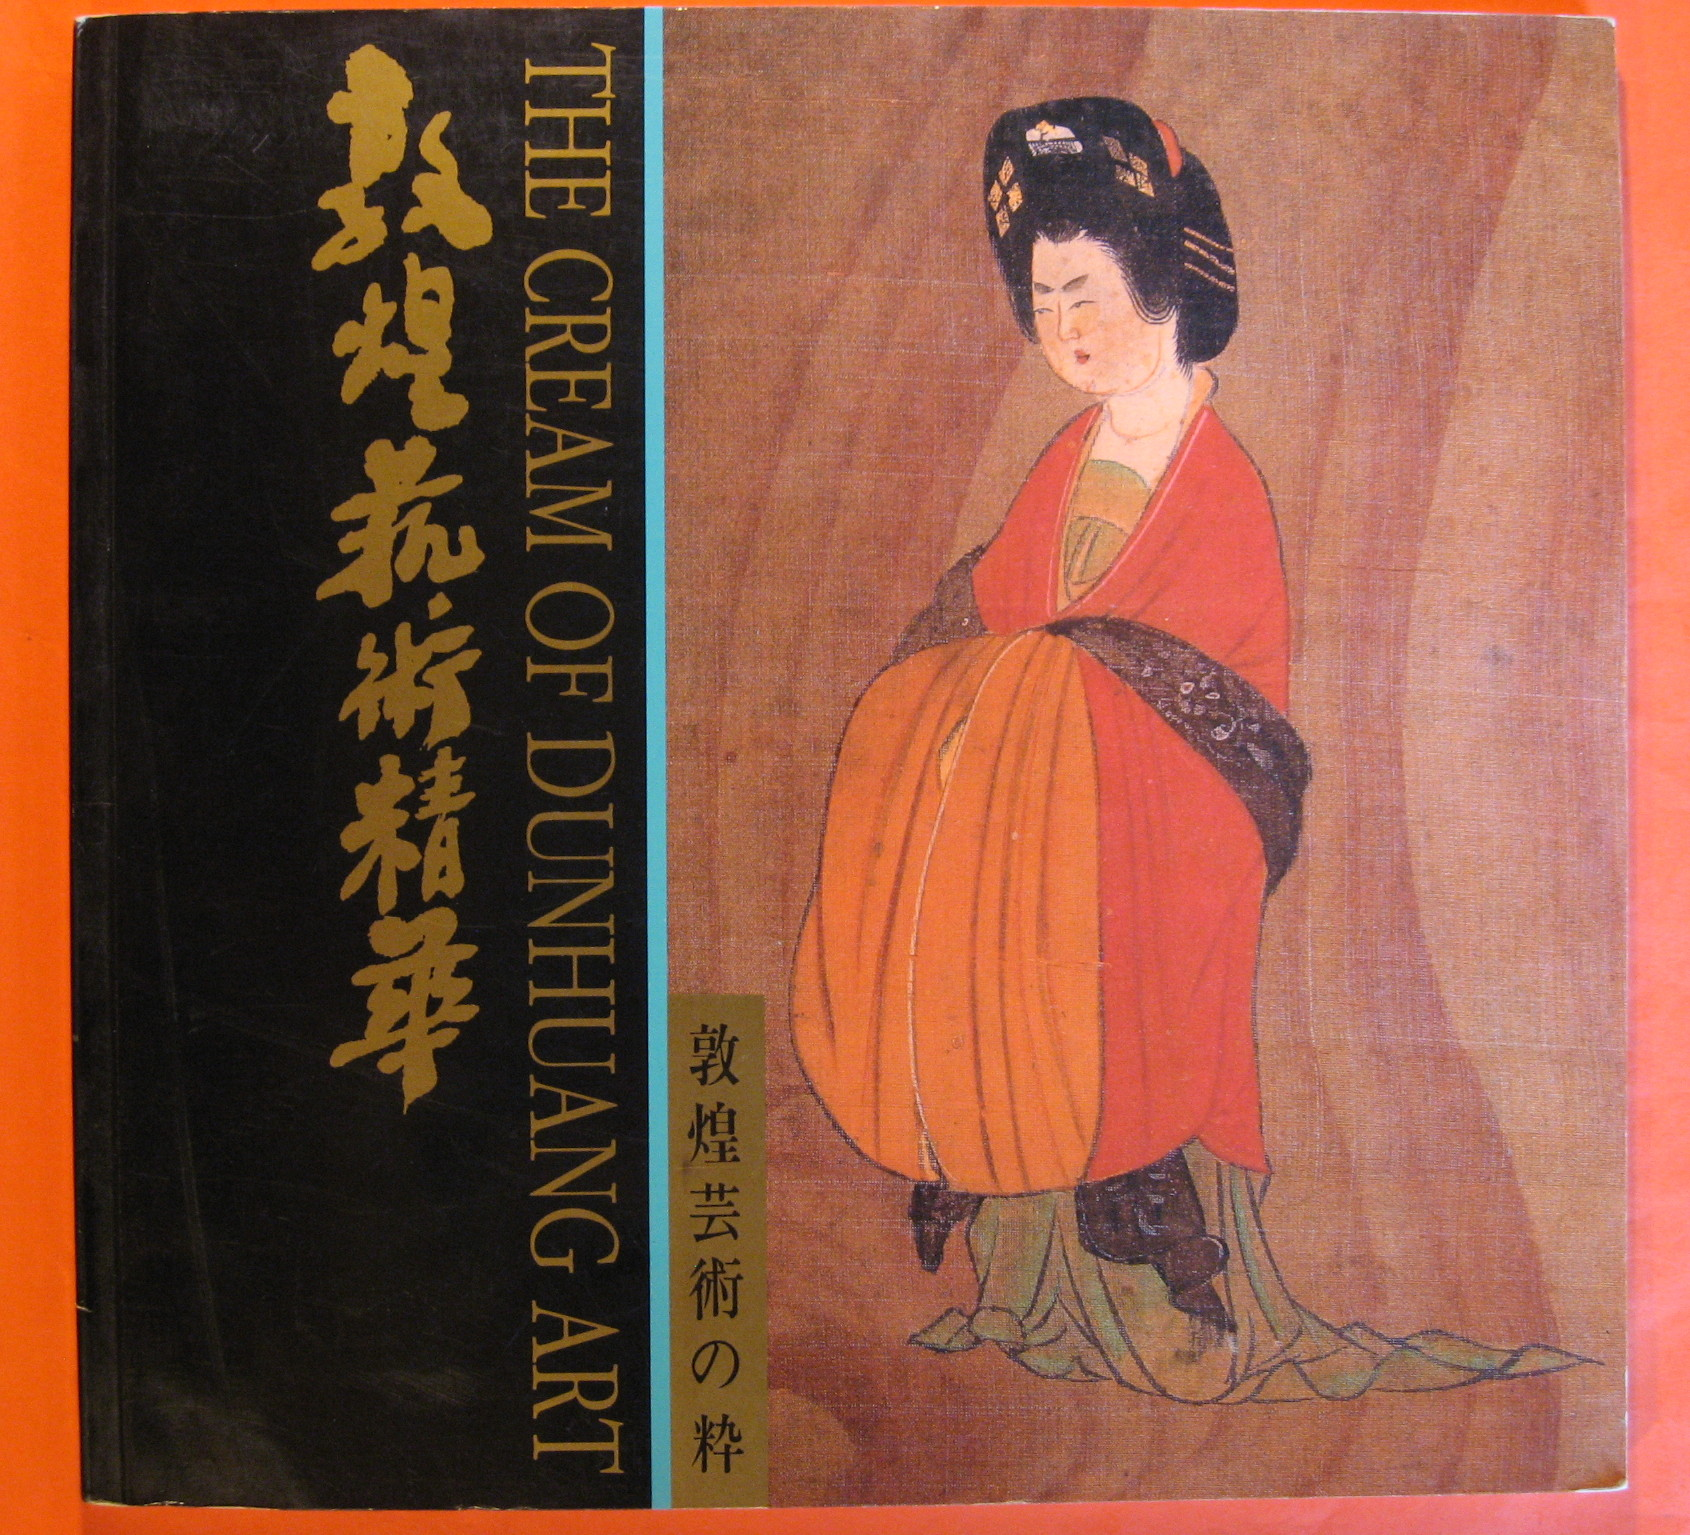 The Cream of Dunhuang Art /Tun-huang i shu ching hua, Wenjie, Duan (Editor)